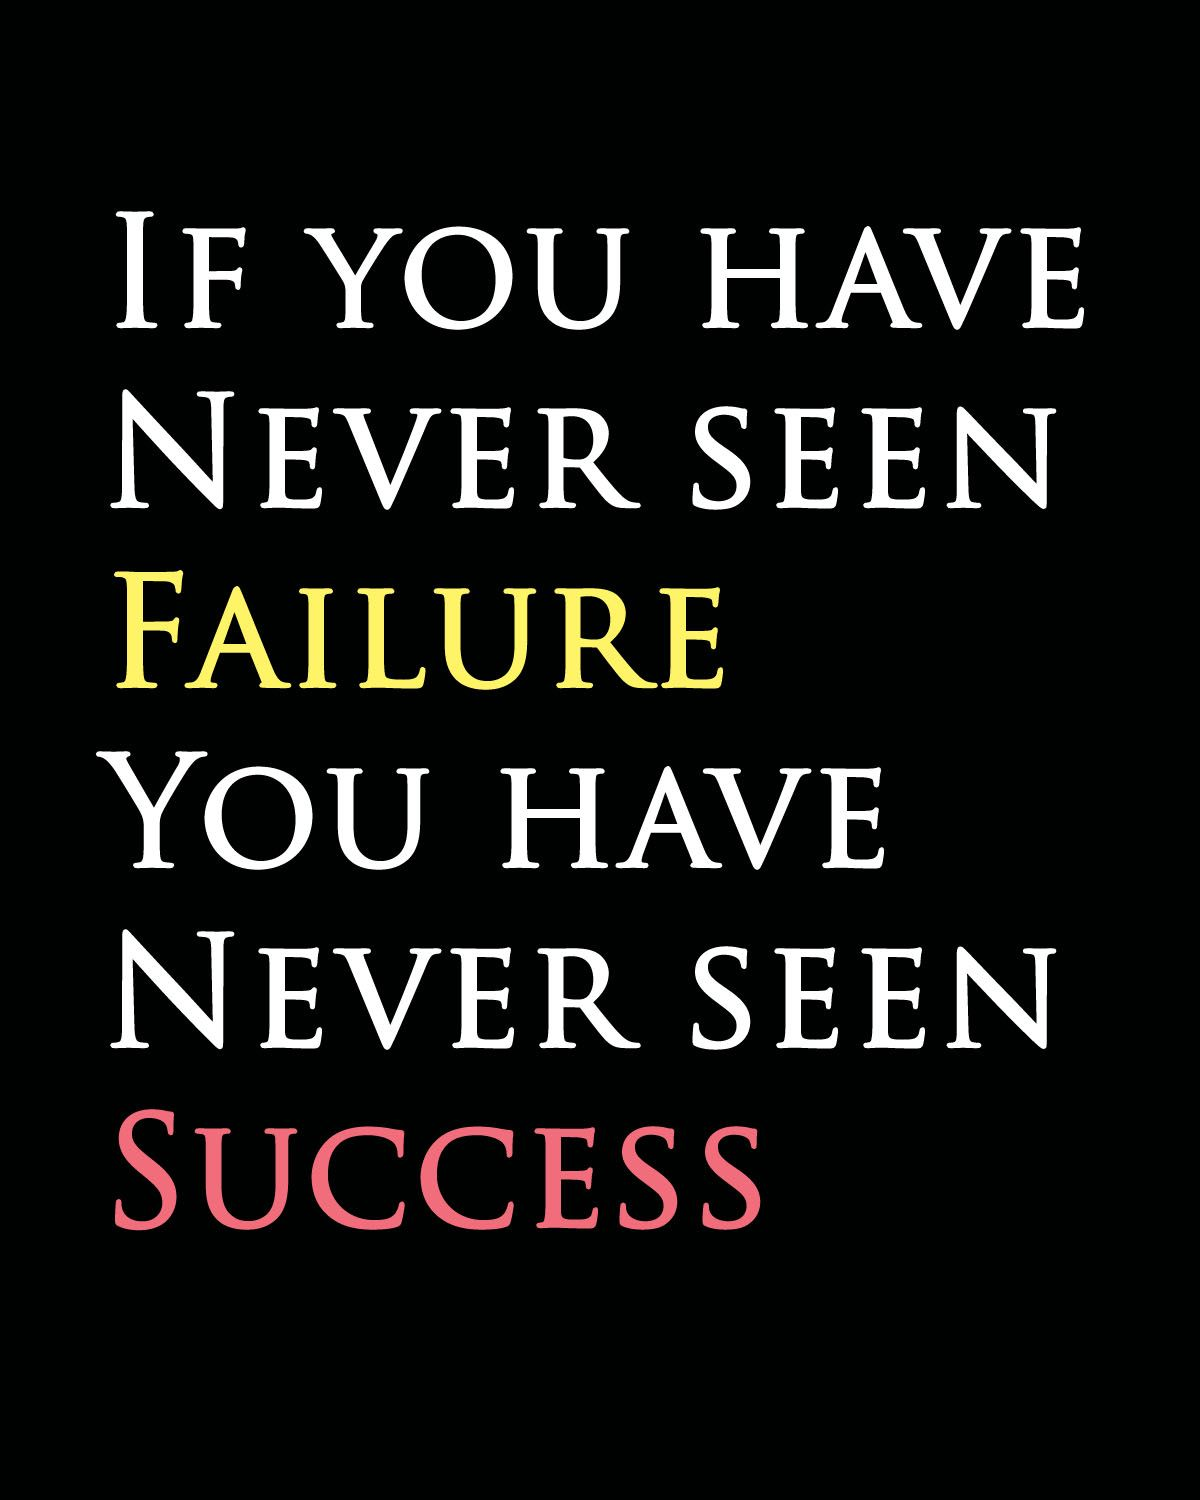 Positive Sales Quotes If You Have Never Seen Failure You Have Never Seen Success